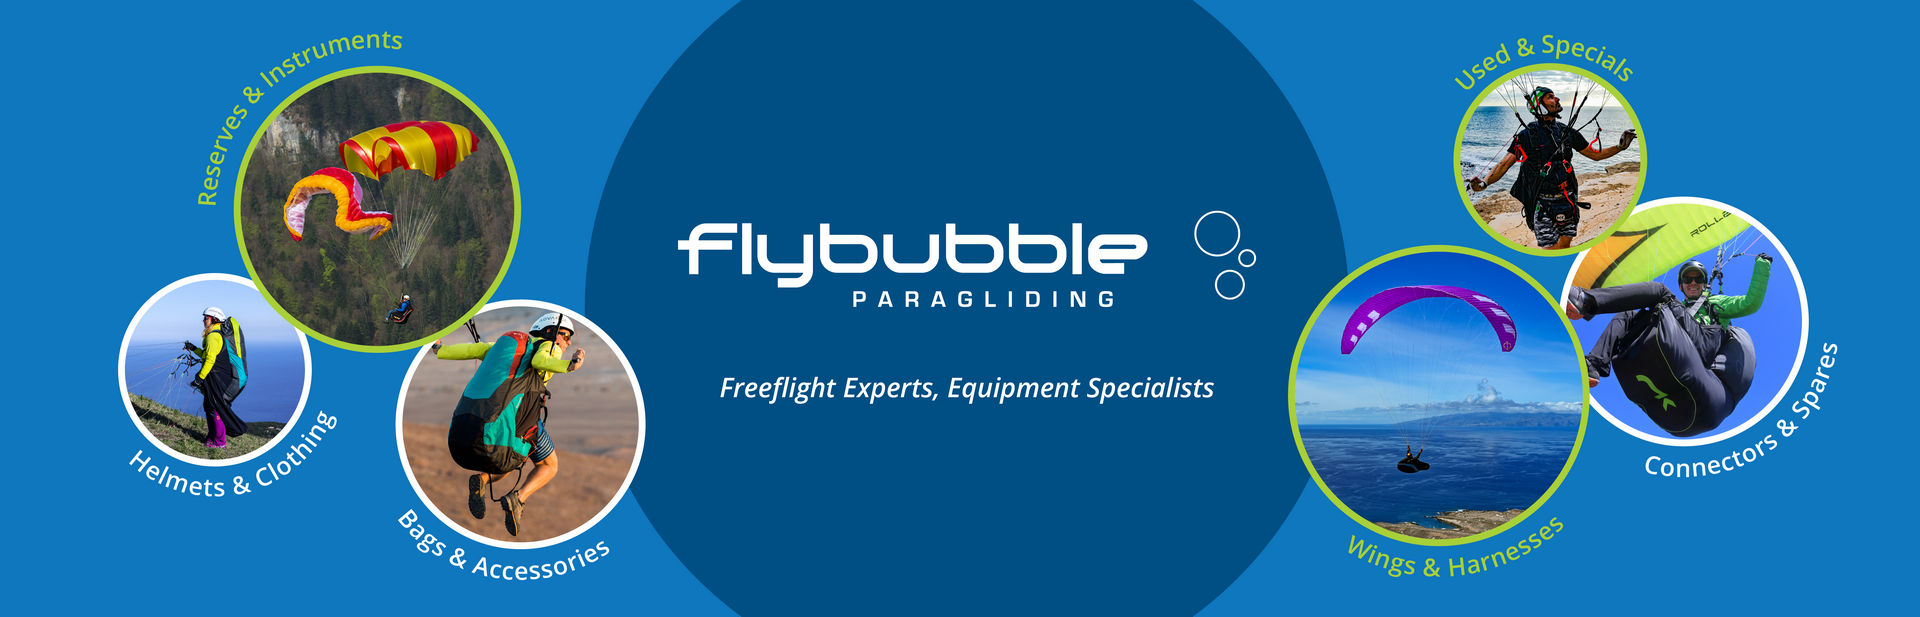 Flybubble Online Shop - Paragliding Freeflight Equipment Emporium